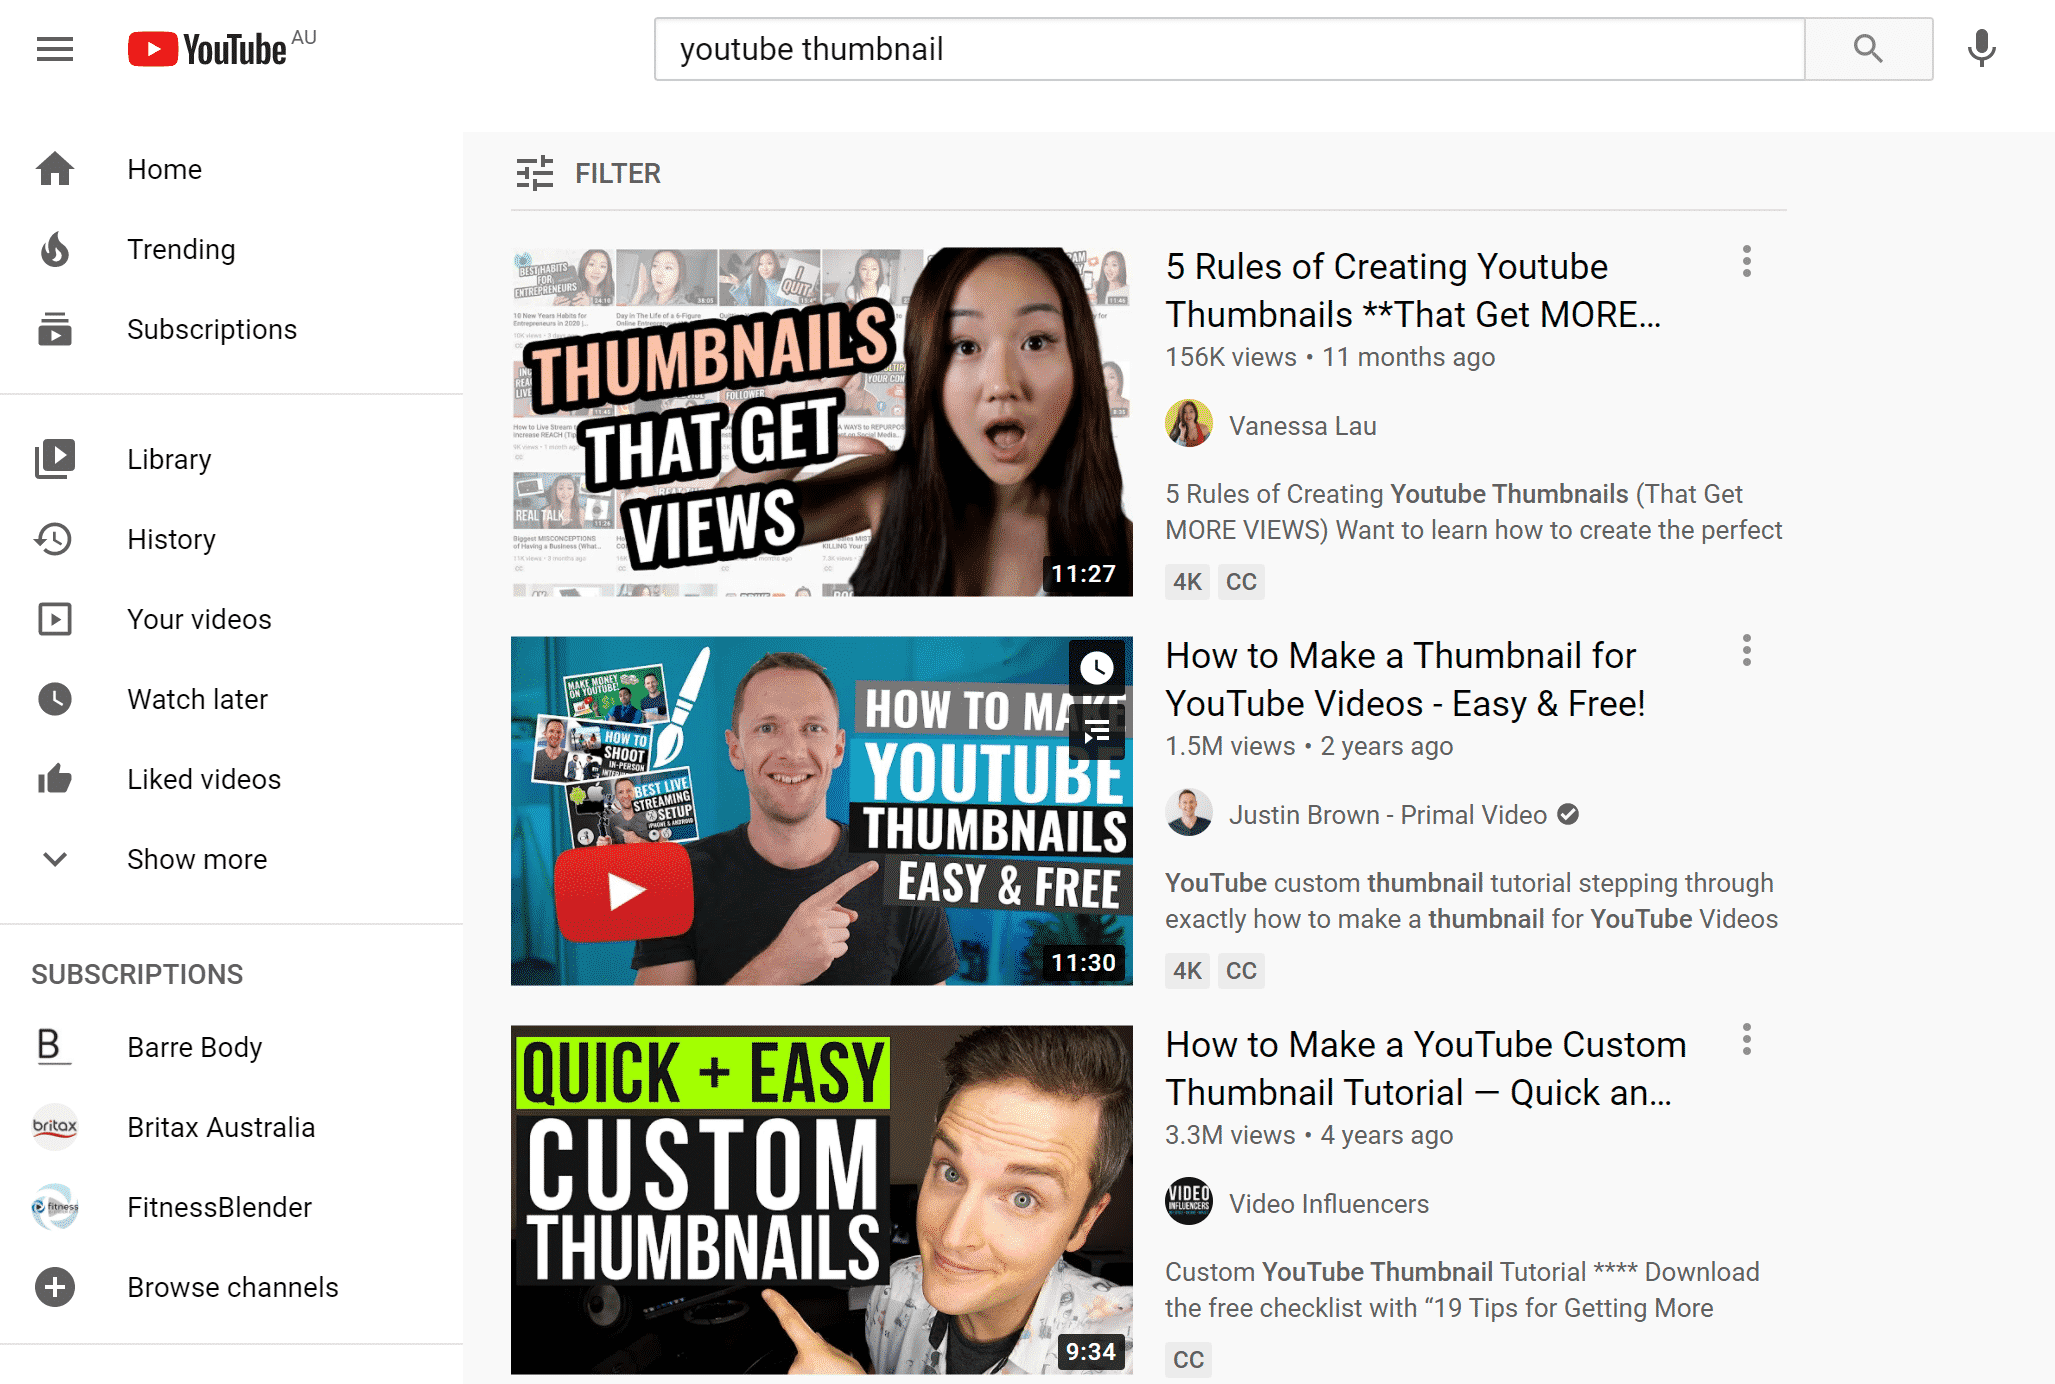 Thumbnails for YouTube videos